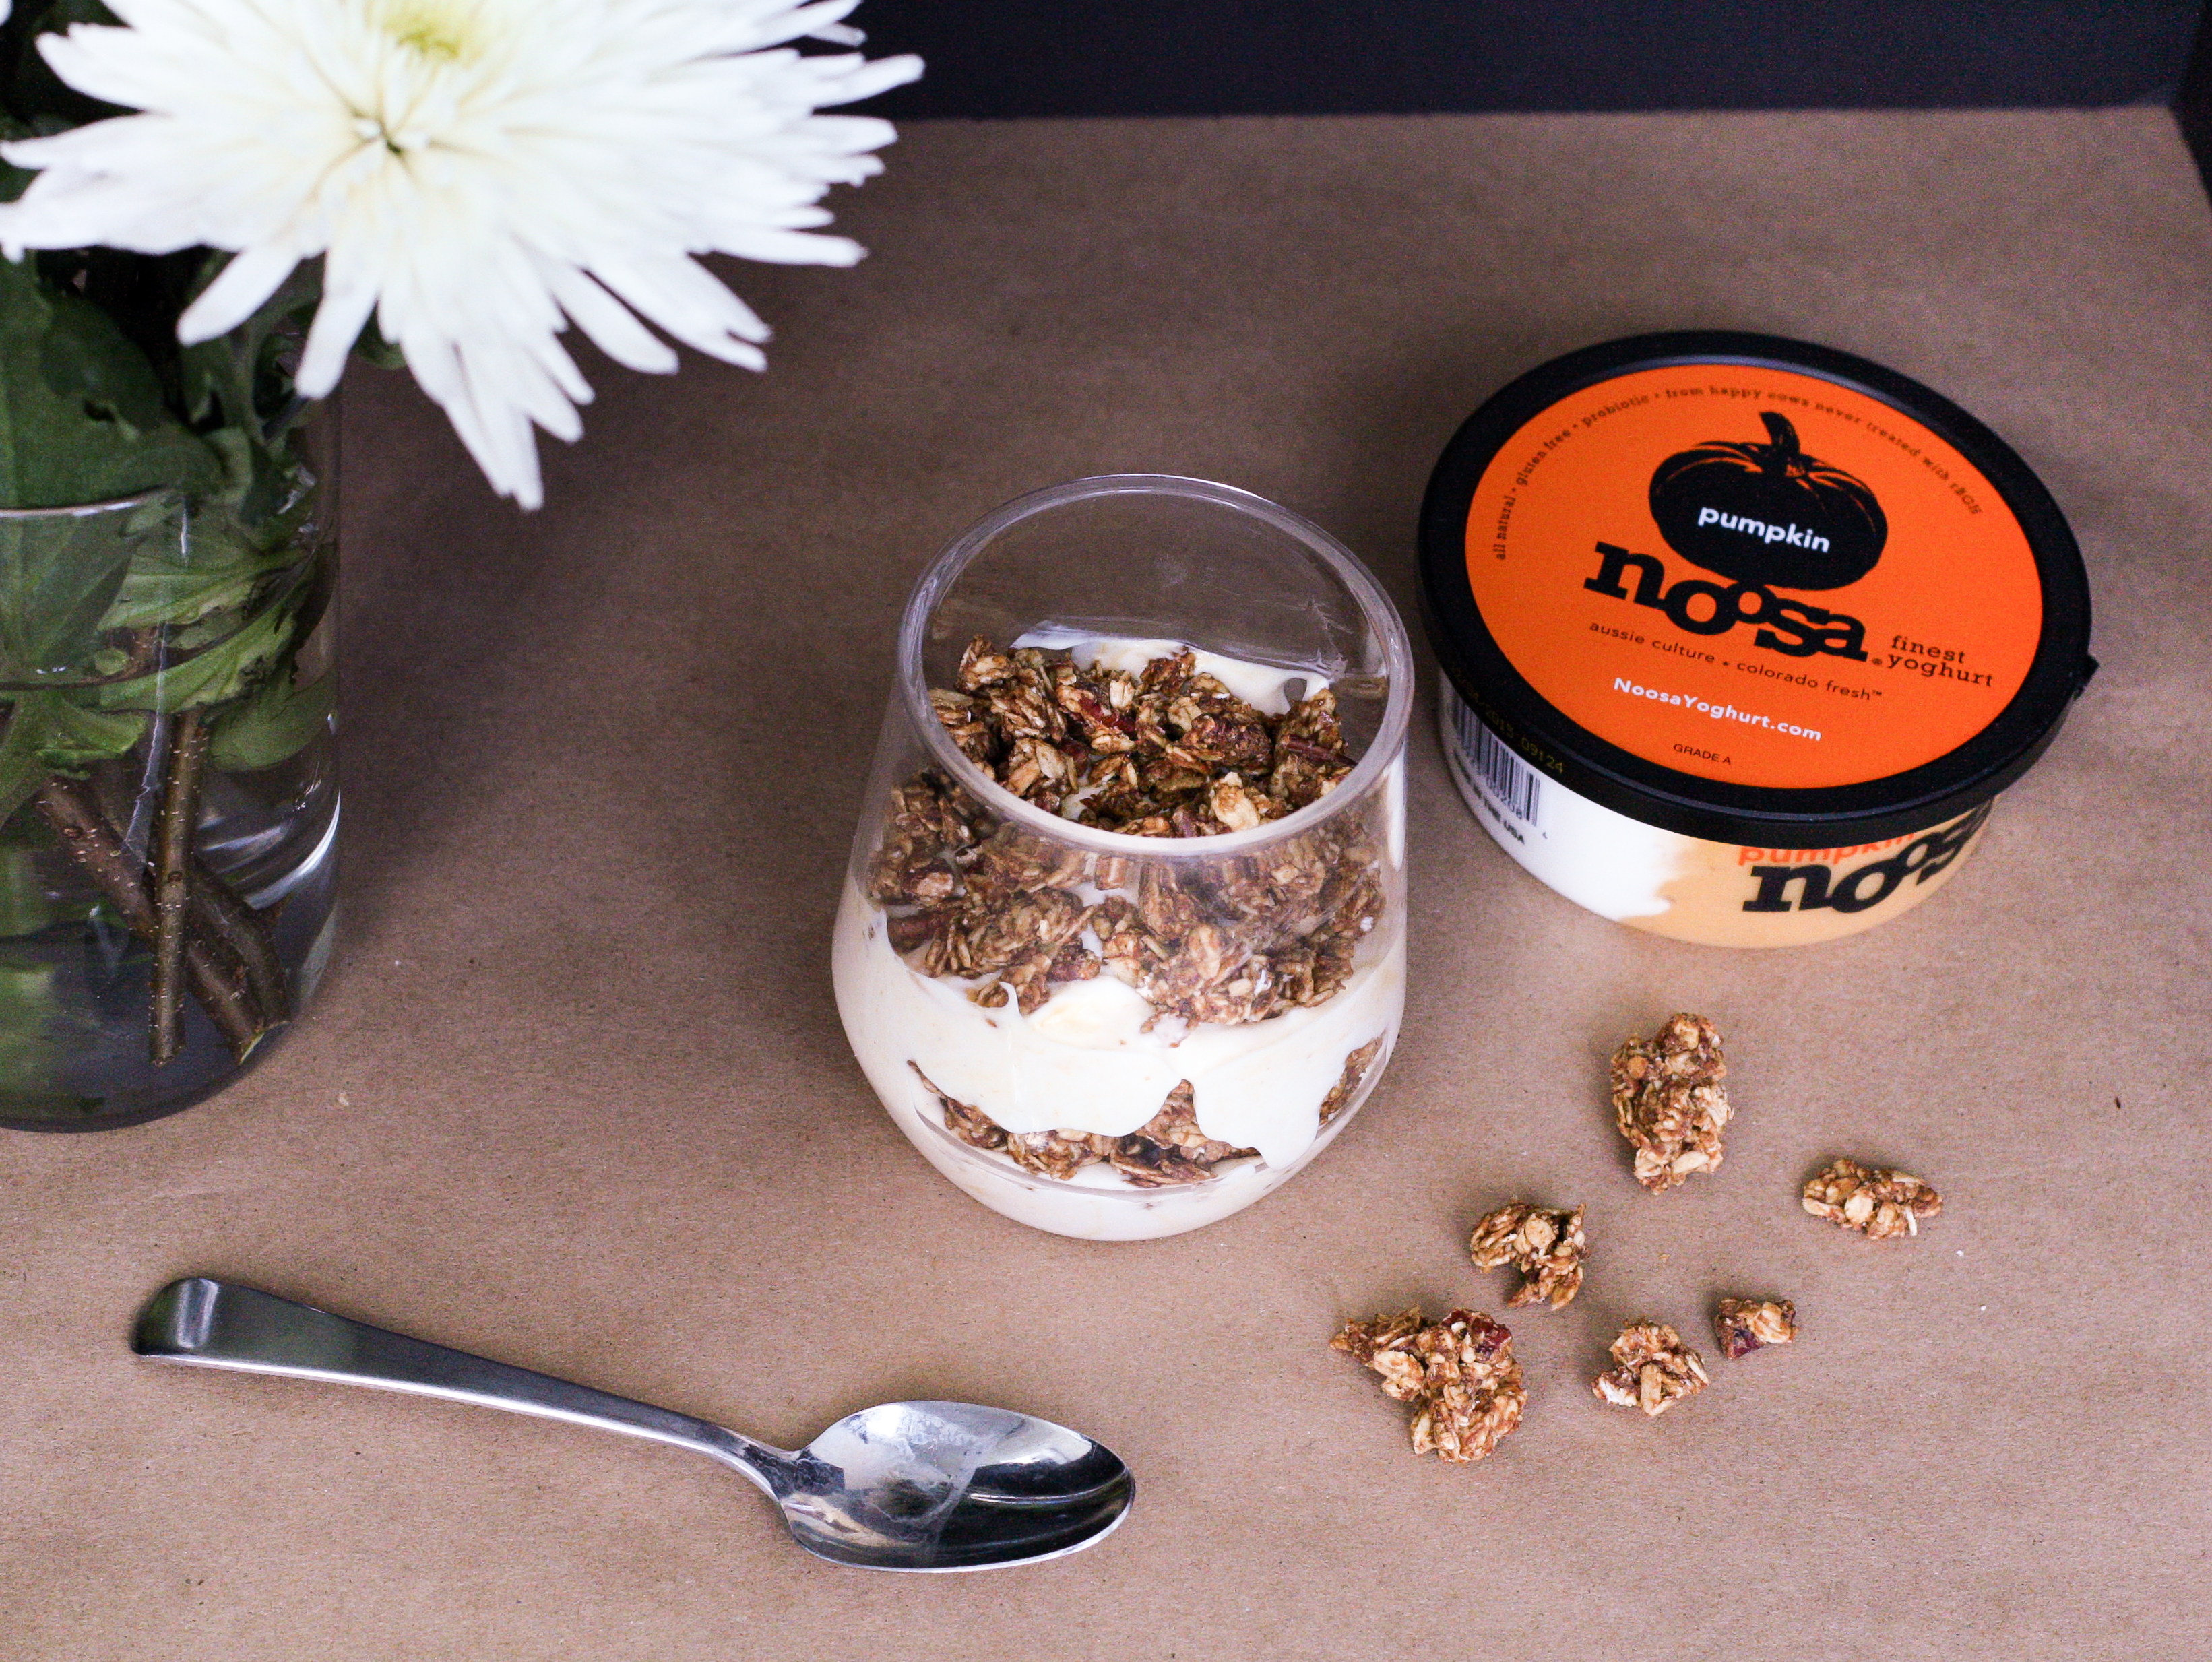 Noosa Pumpkin Yogurt Parfait with Homemade Pumpkin Granola.